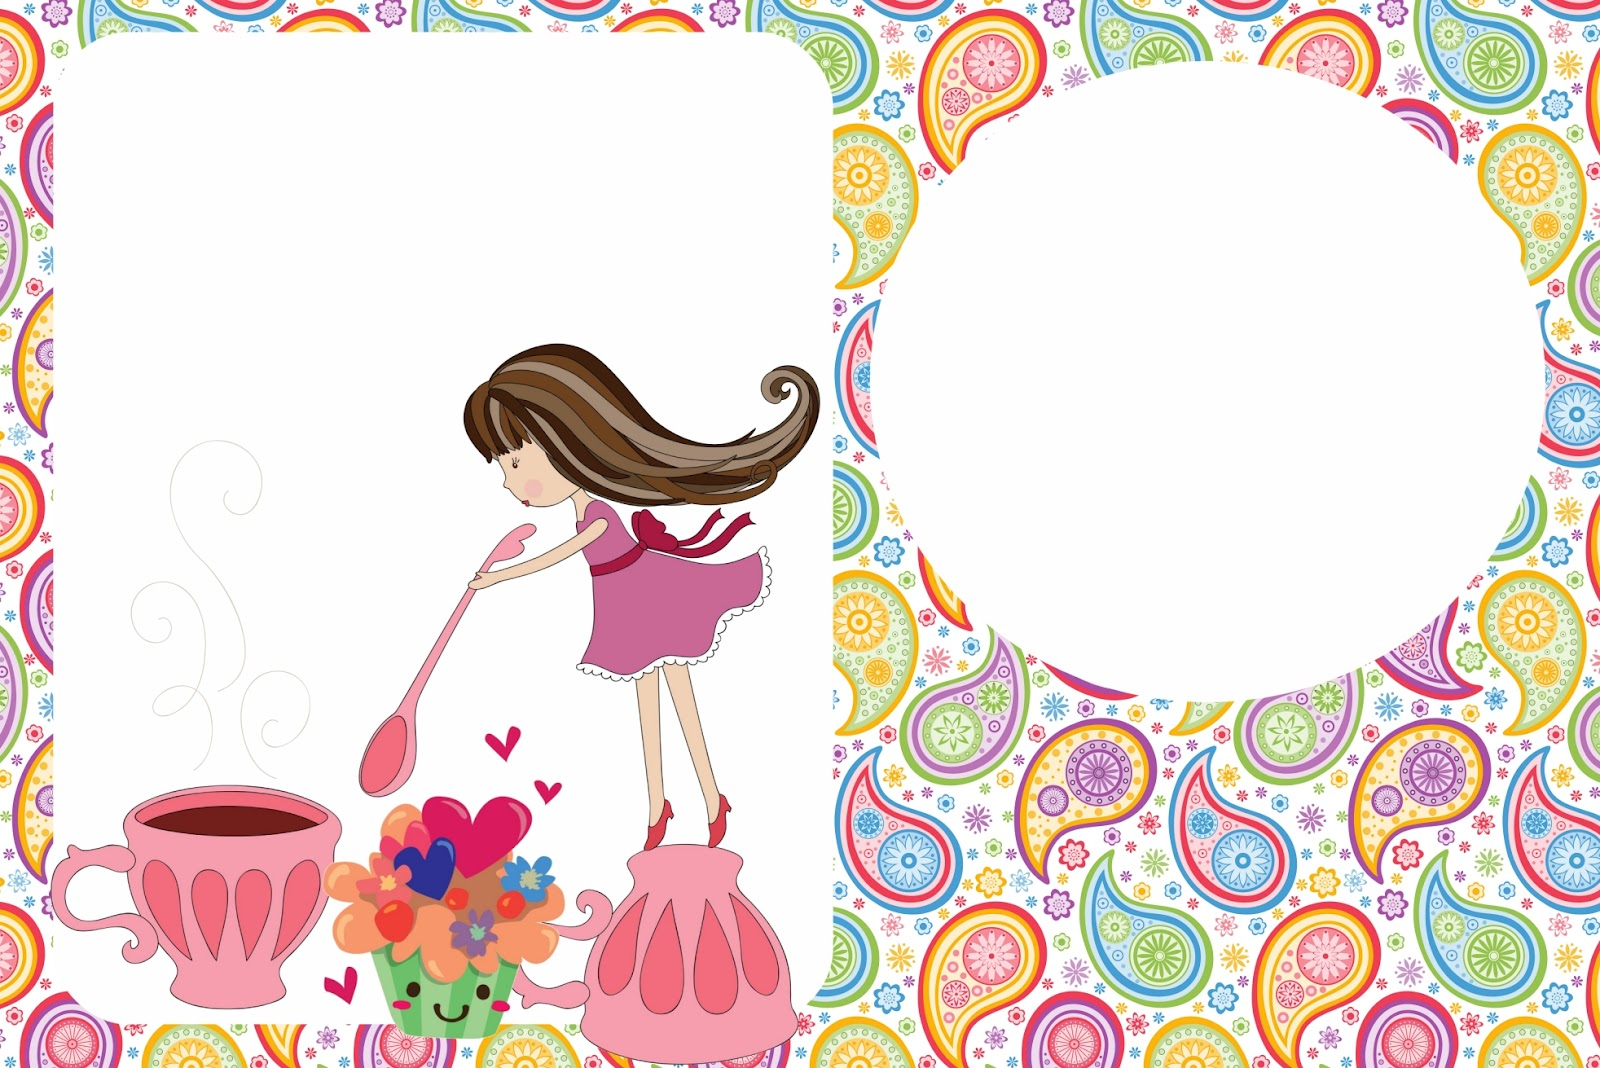 Girls Tea Party: Free Printable Invitations. | Oh My Fiesta For Ladies!